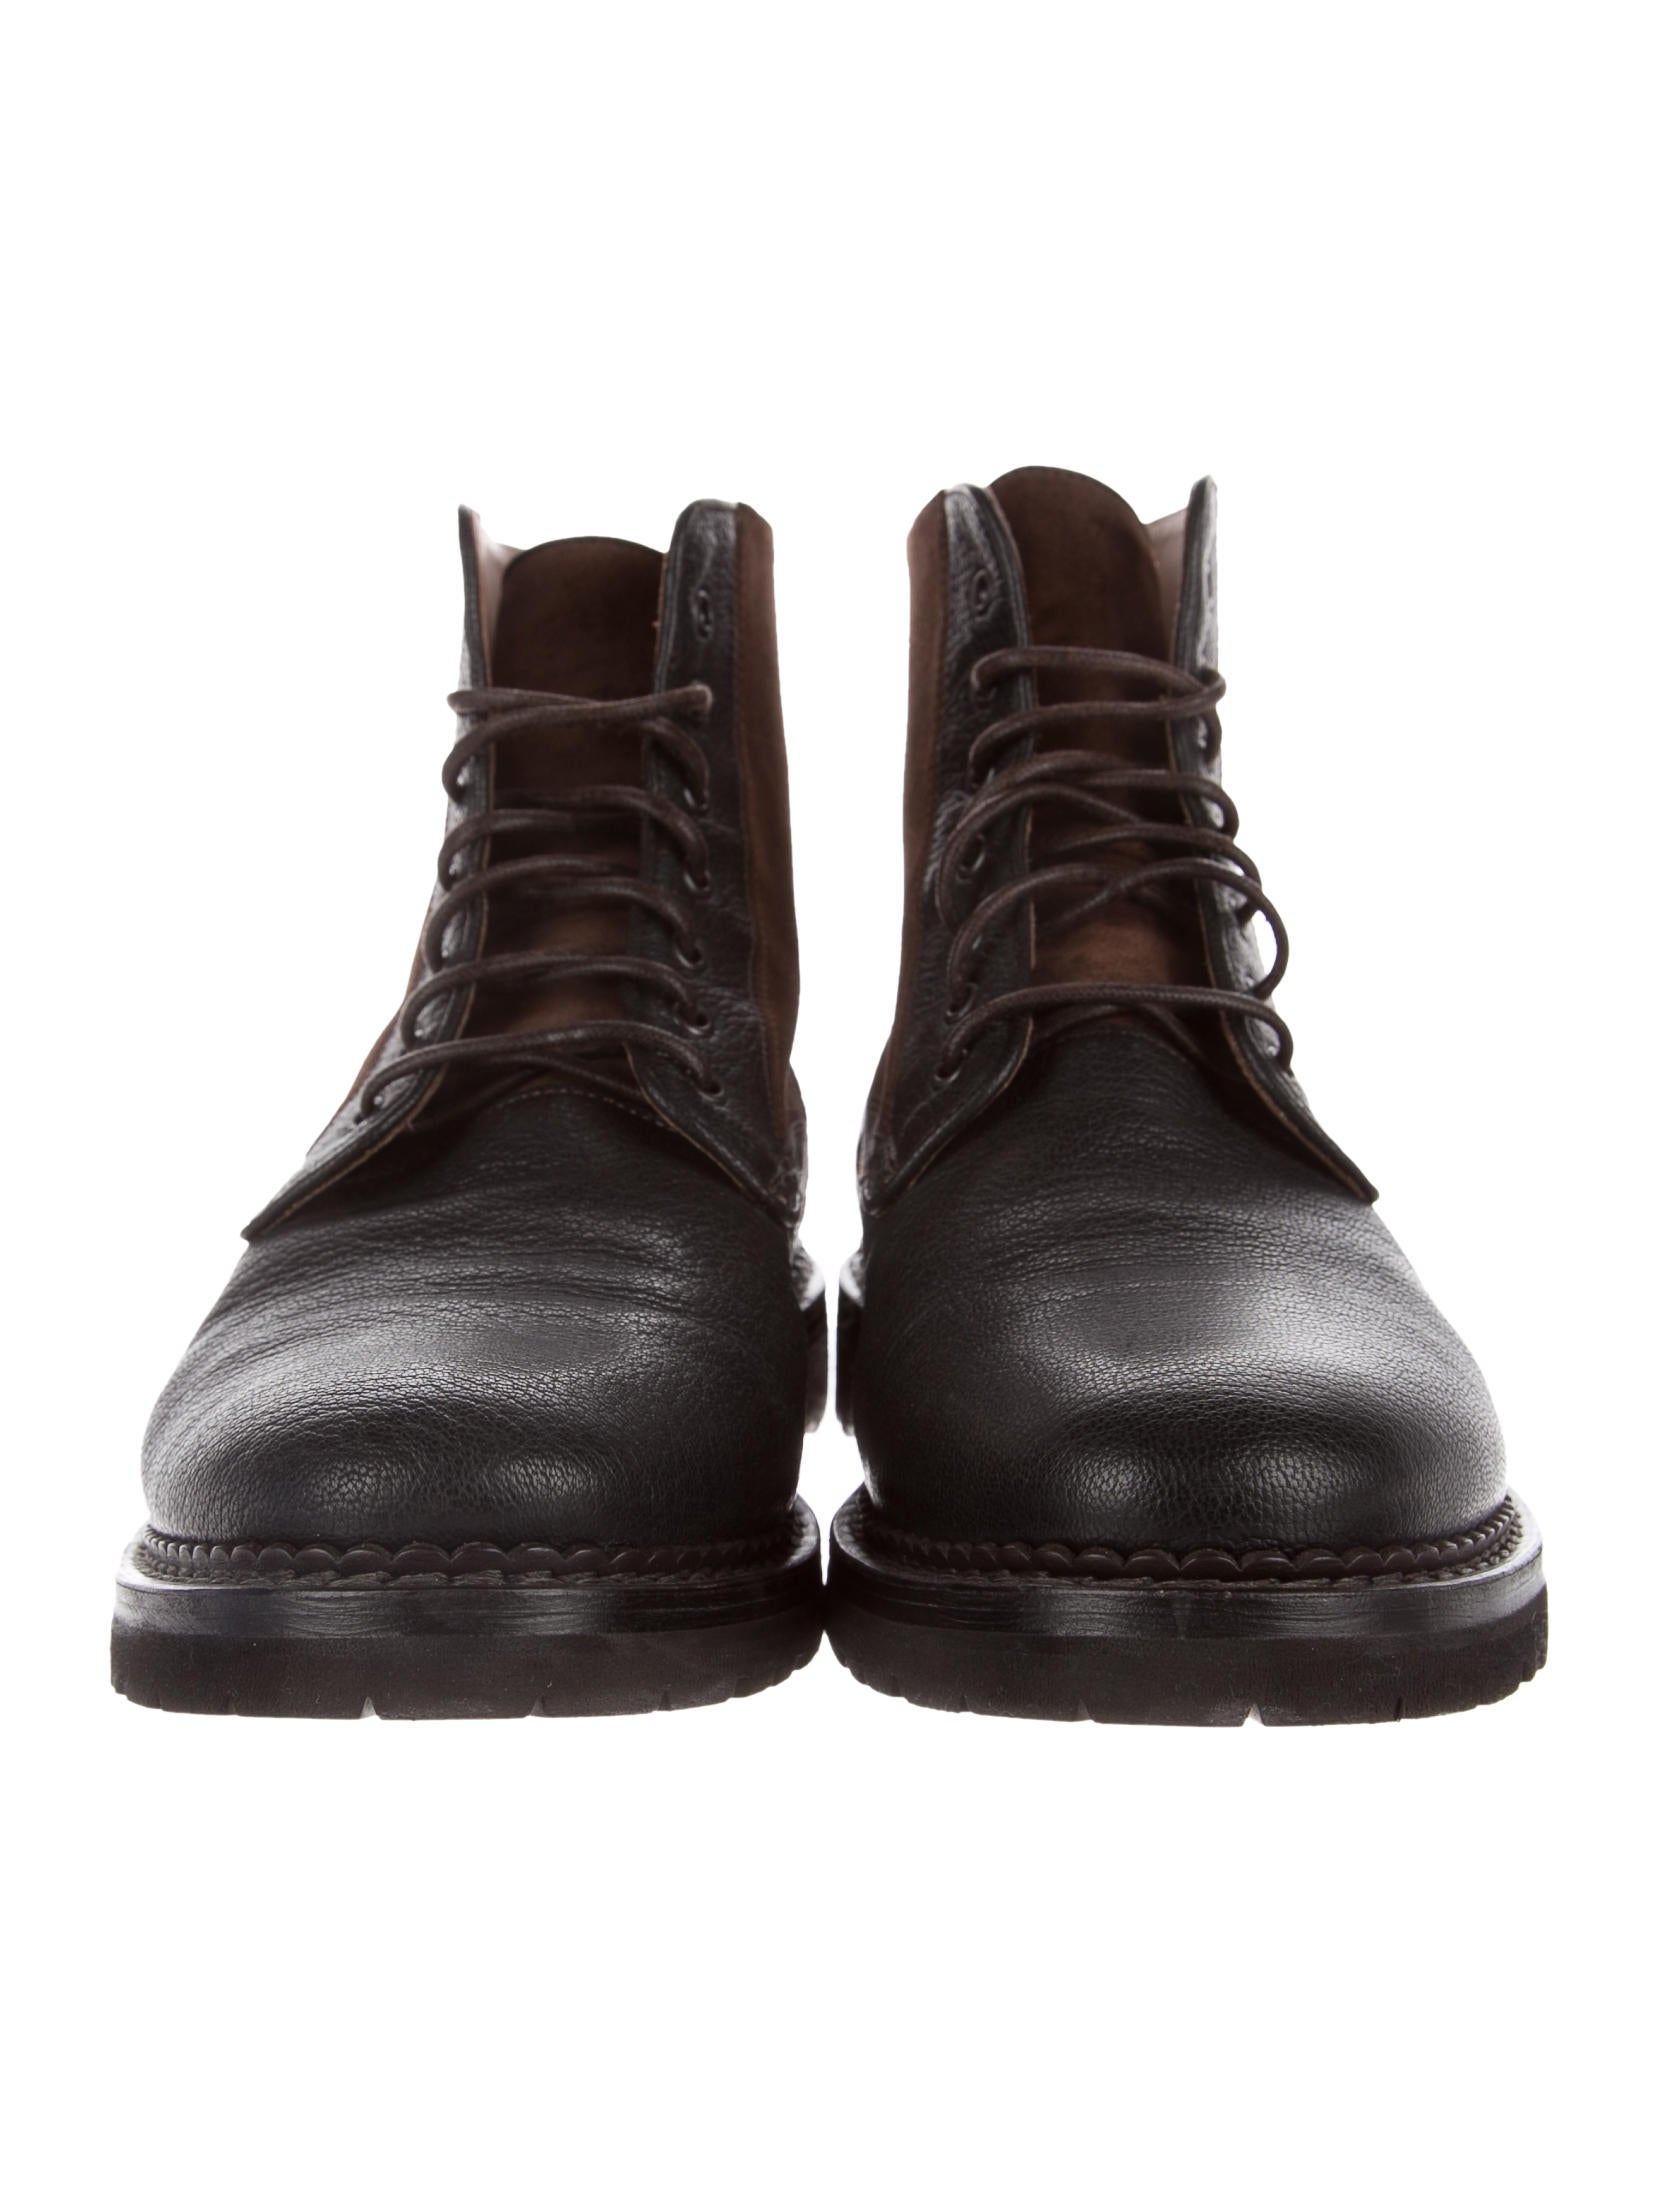 Shoes Women Clogs Low Shoes Lace-up shoes Sneakers Boots Men Clogs Low shoes Lace-up shoes Sneakers Boots Girls Clogs Low shoes Strapped Shoes Lace-up shoes Boys Suede Leather Black $ Boston Shearling Suede Leather Mink $ Show 48 more items Styles Collection Materials Leather Suede Birko-Flor Patent.